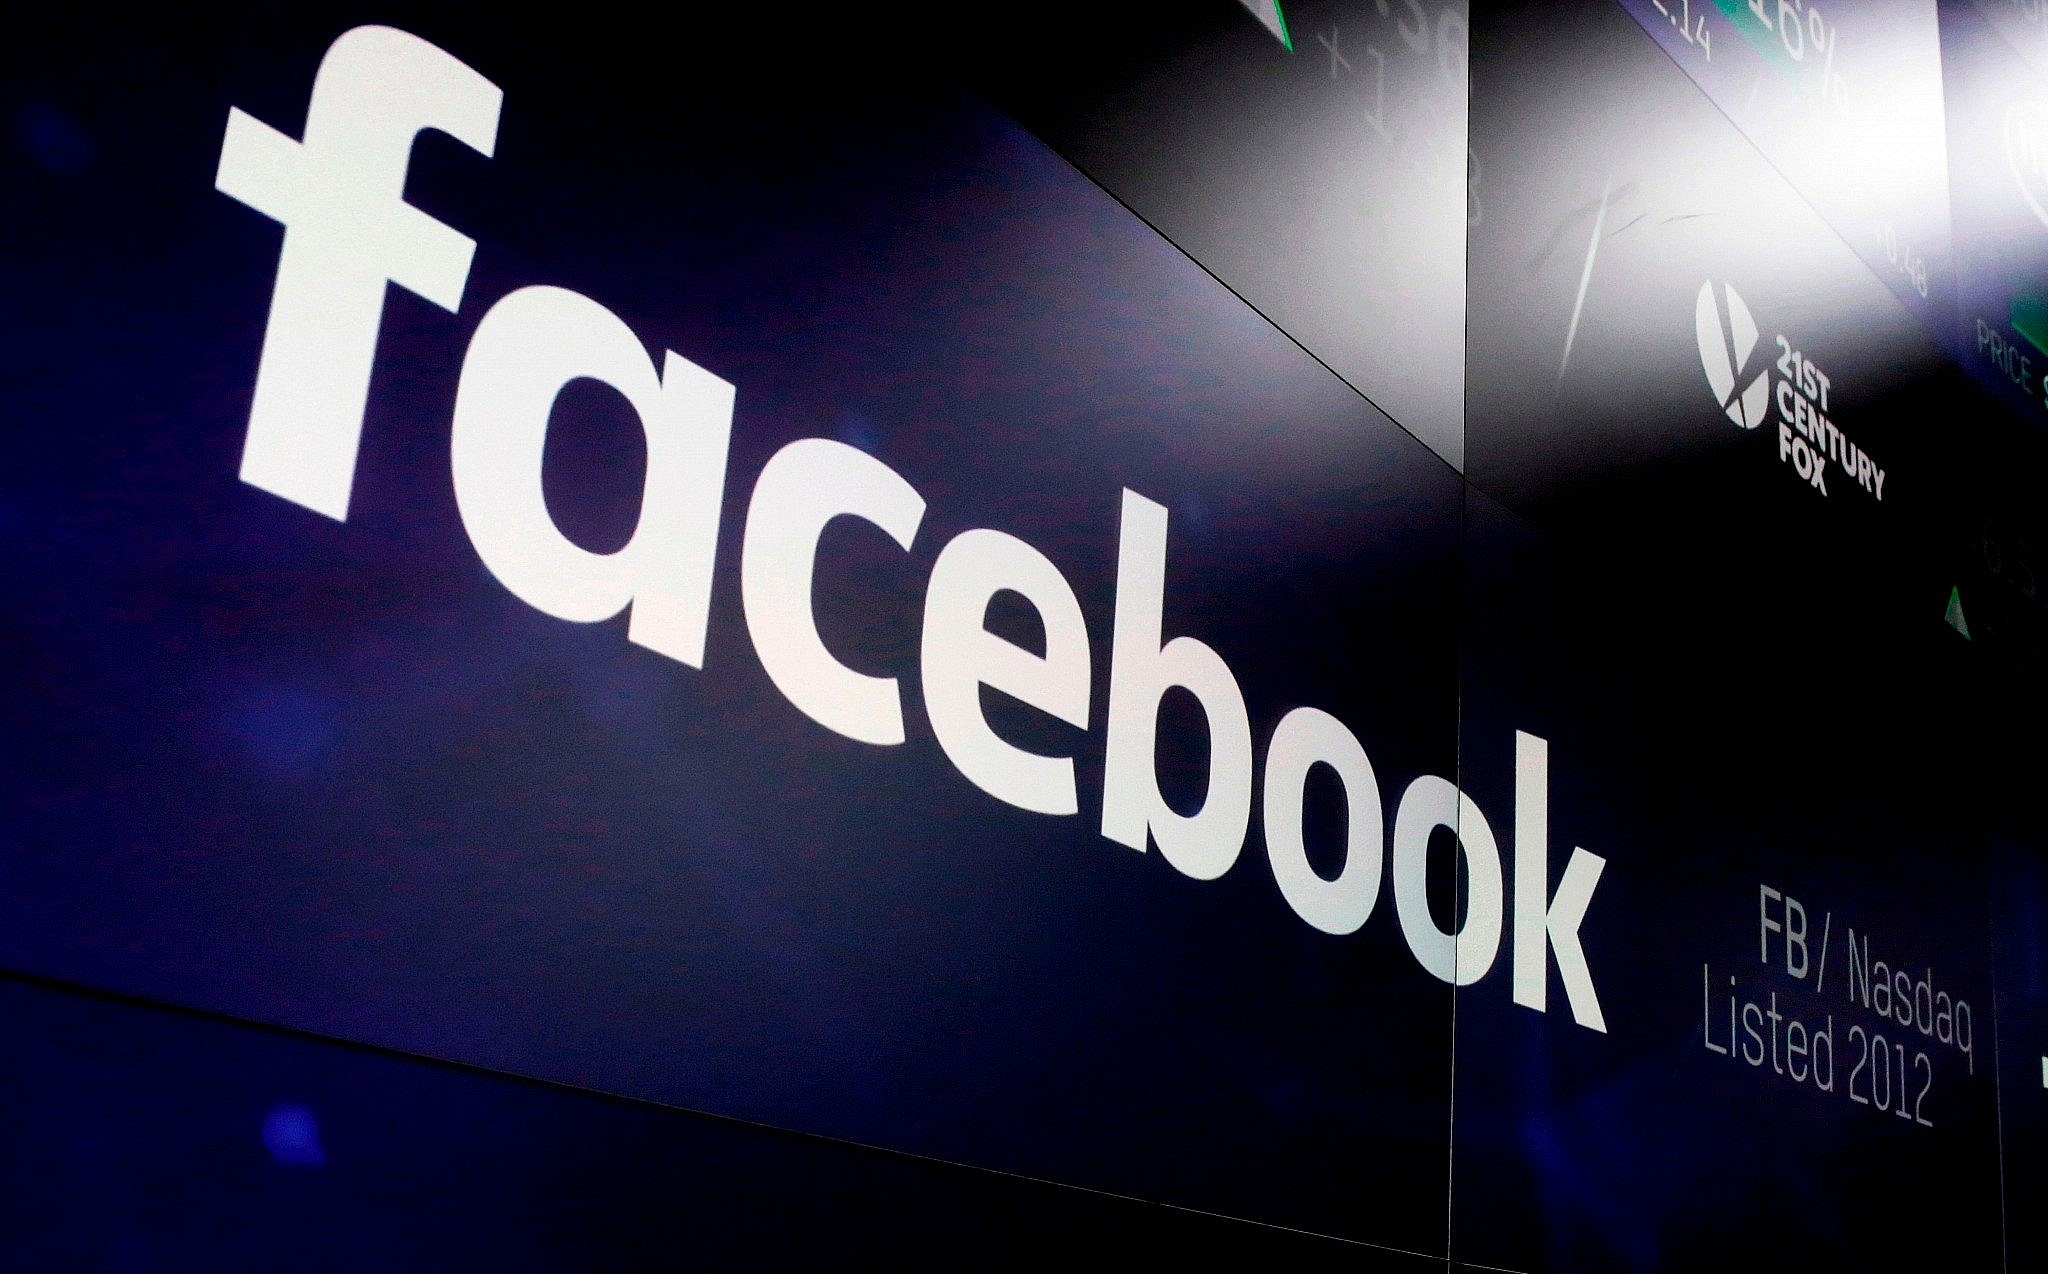 Facebook S Twitter And Instagram Accounts Briefly Hacked The